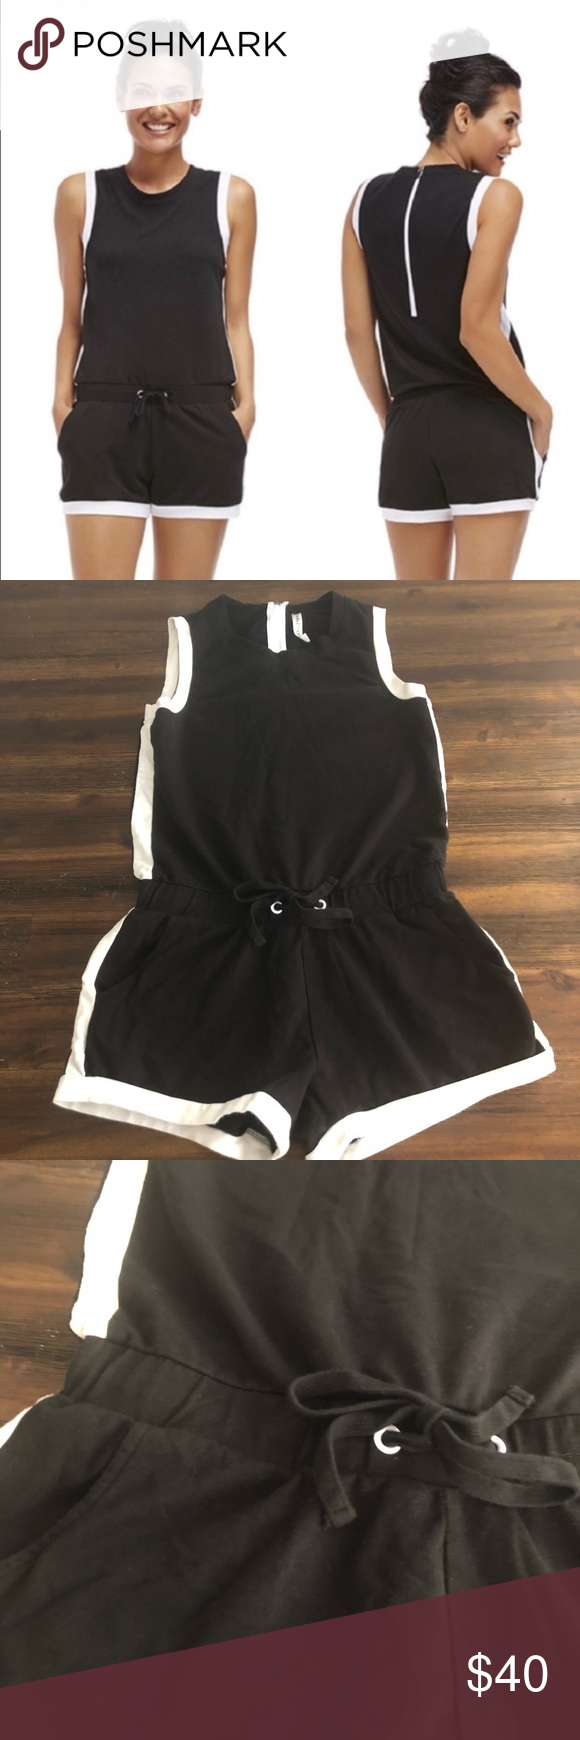 3722a1a703a4 Fabletics Black and White Lakeside Romper Fabletics Black and White  Lakeside Romper XS - EUC Armpit